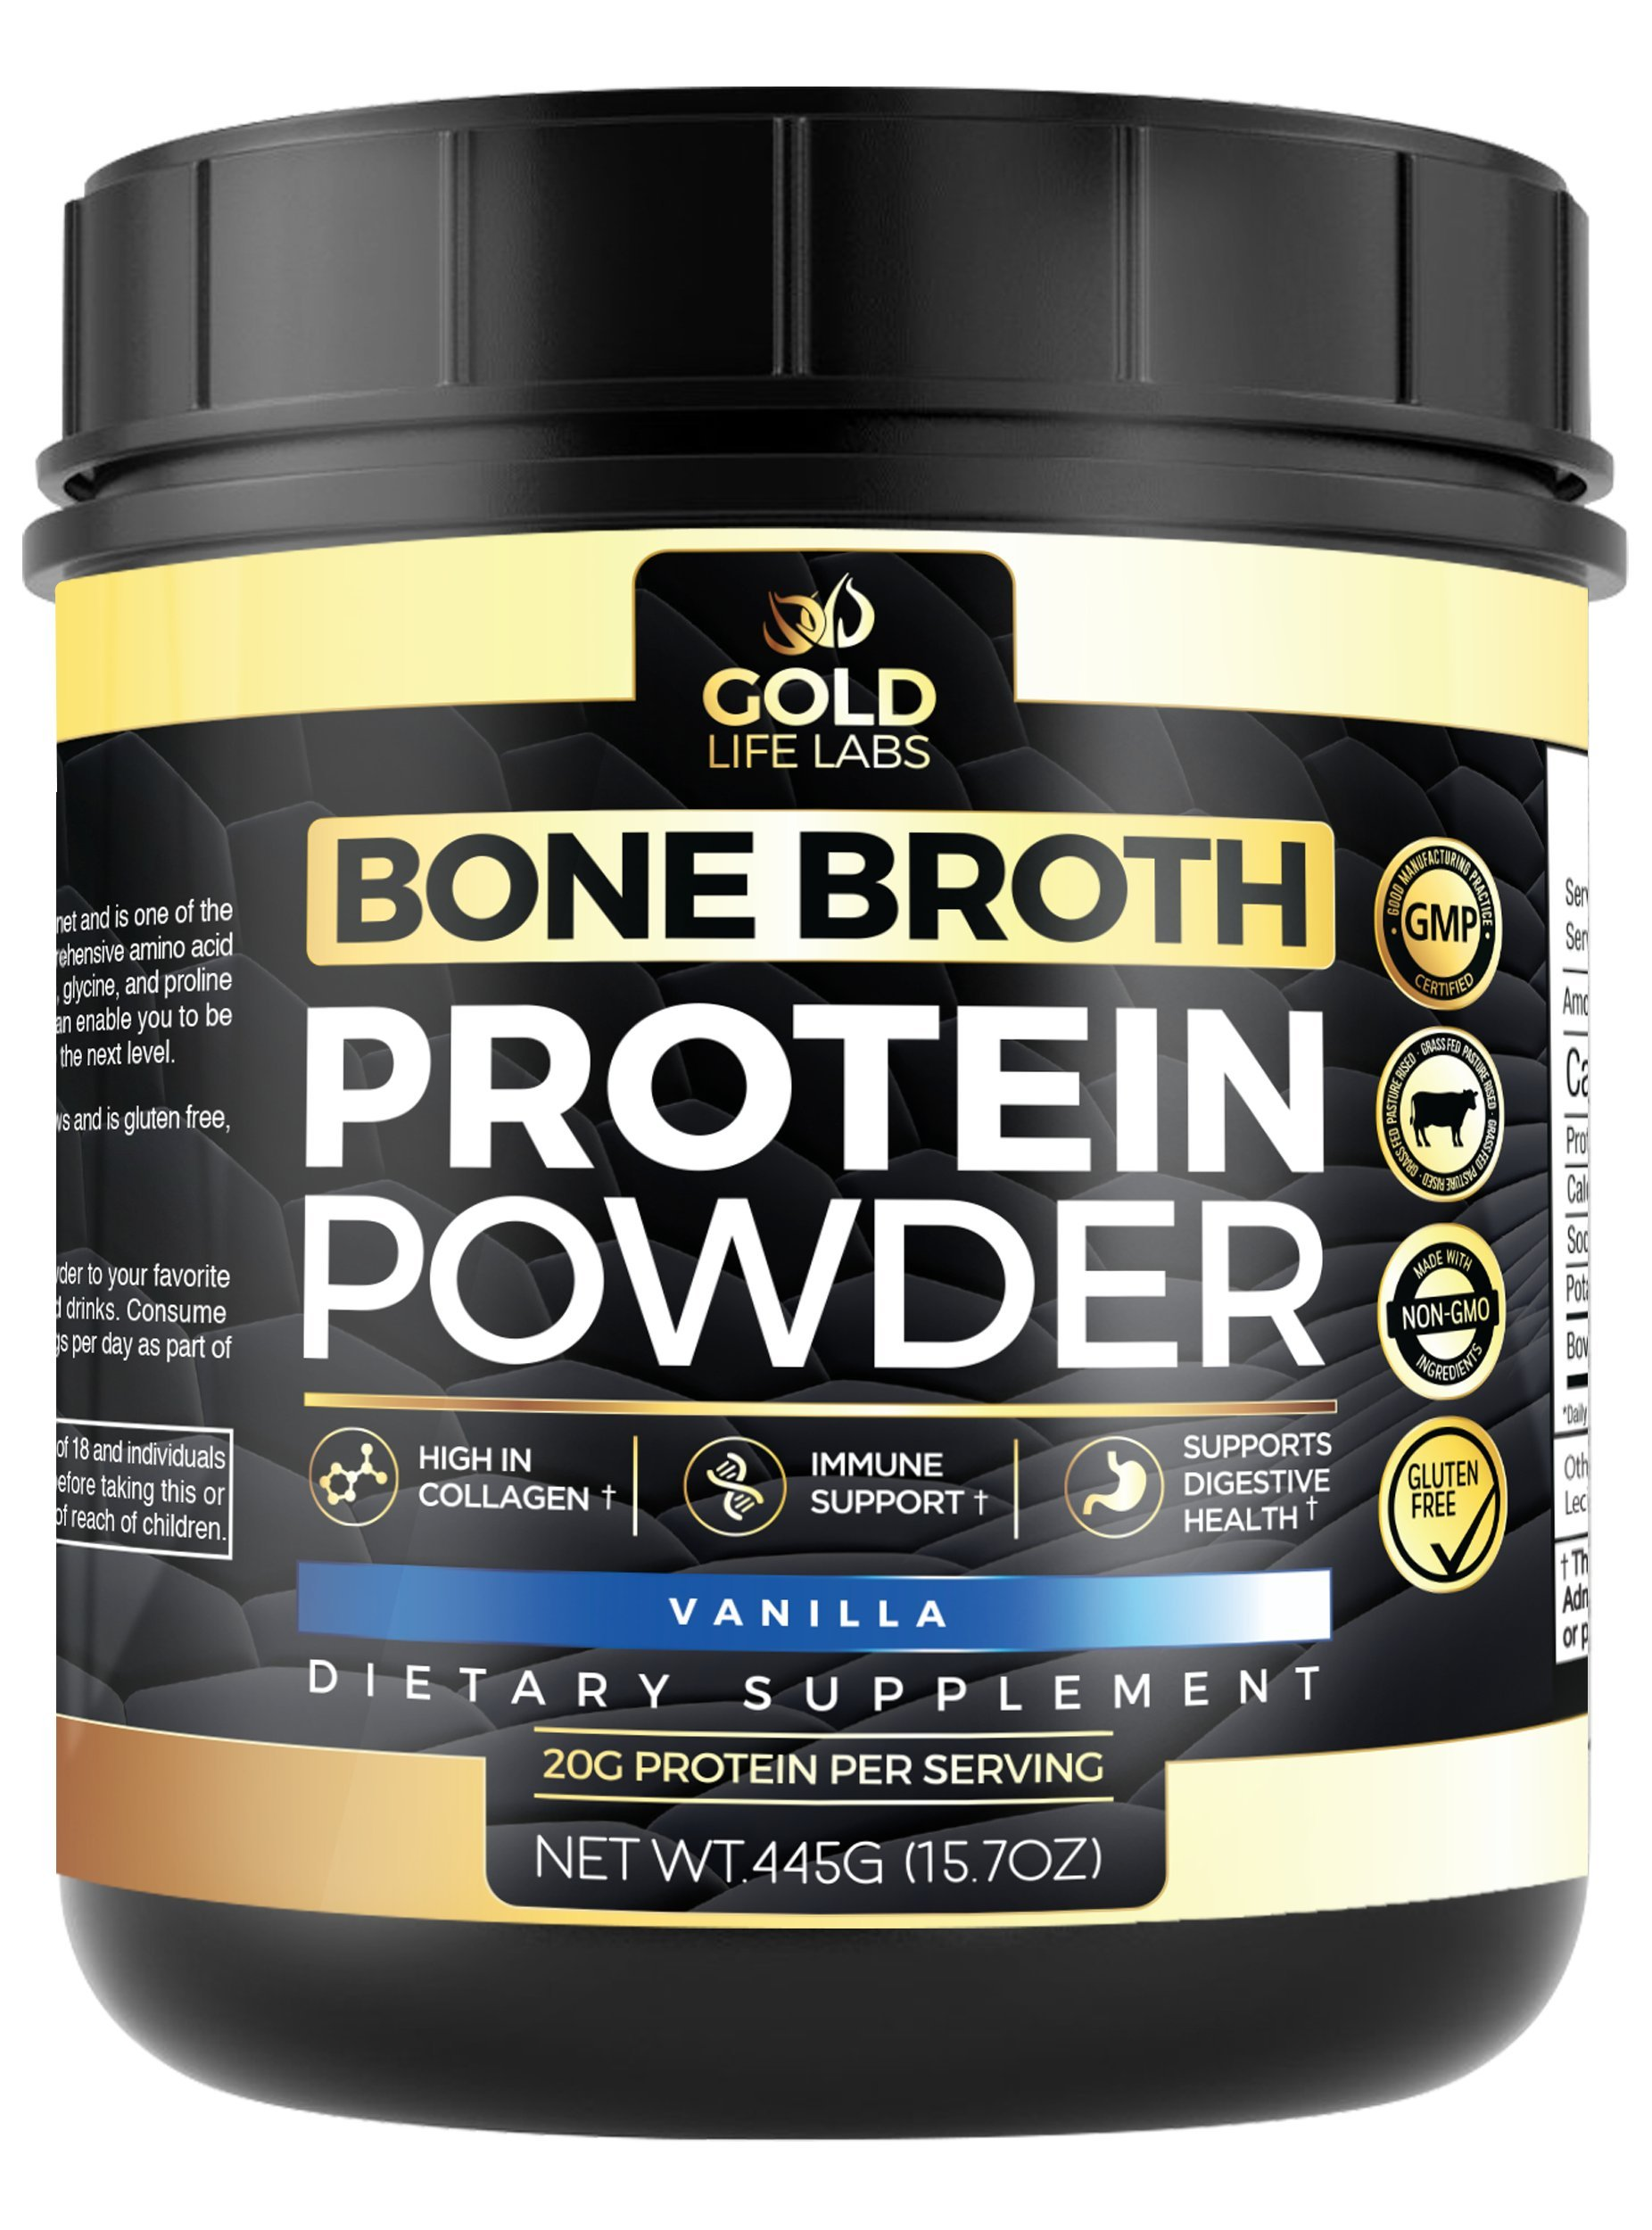 Bone Broth Protein Powder Vanilla - Grass Fed Beef 20 Servings 445g/15.7oz - Gluten Free & Great For Paleo Diet - Bone Broth Powder Supports Digestive & Immune Health - Made In USA by Gold Life Labs